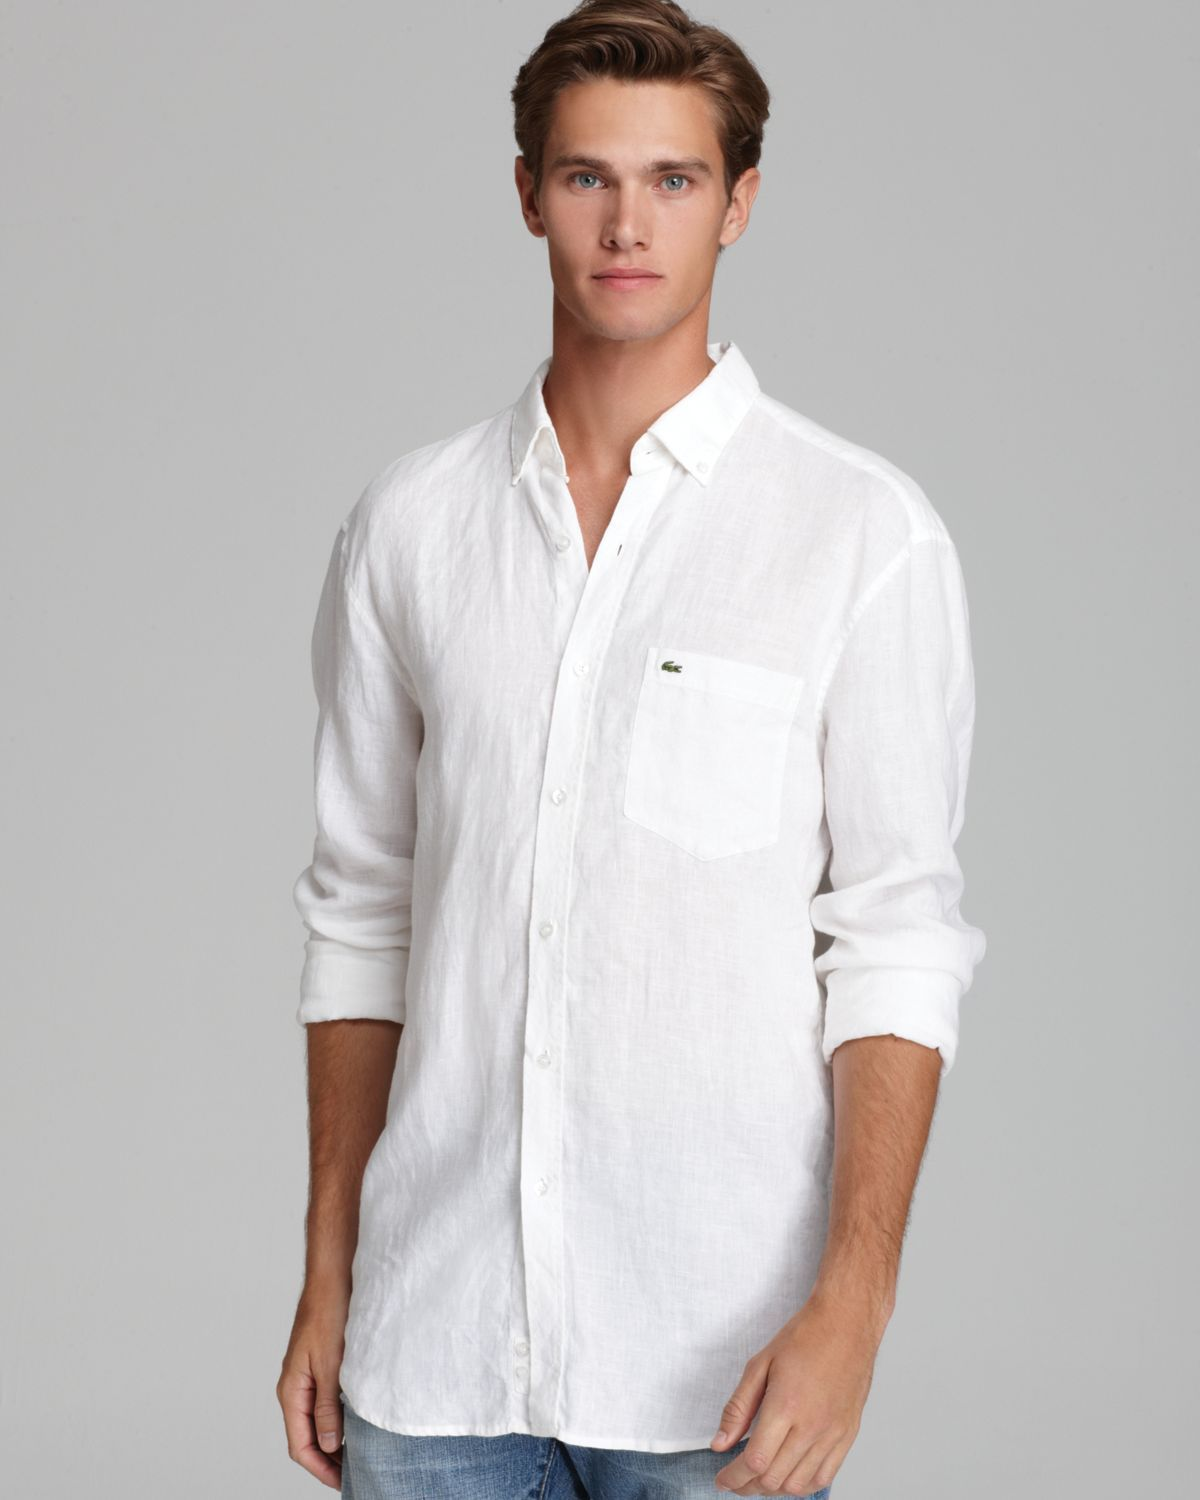 lacoste linen sport shirt classic fit in white for men lyst   MODELS ... de18687bf36